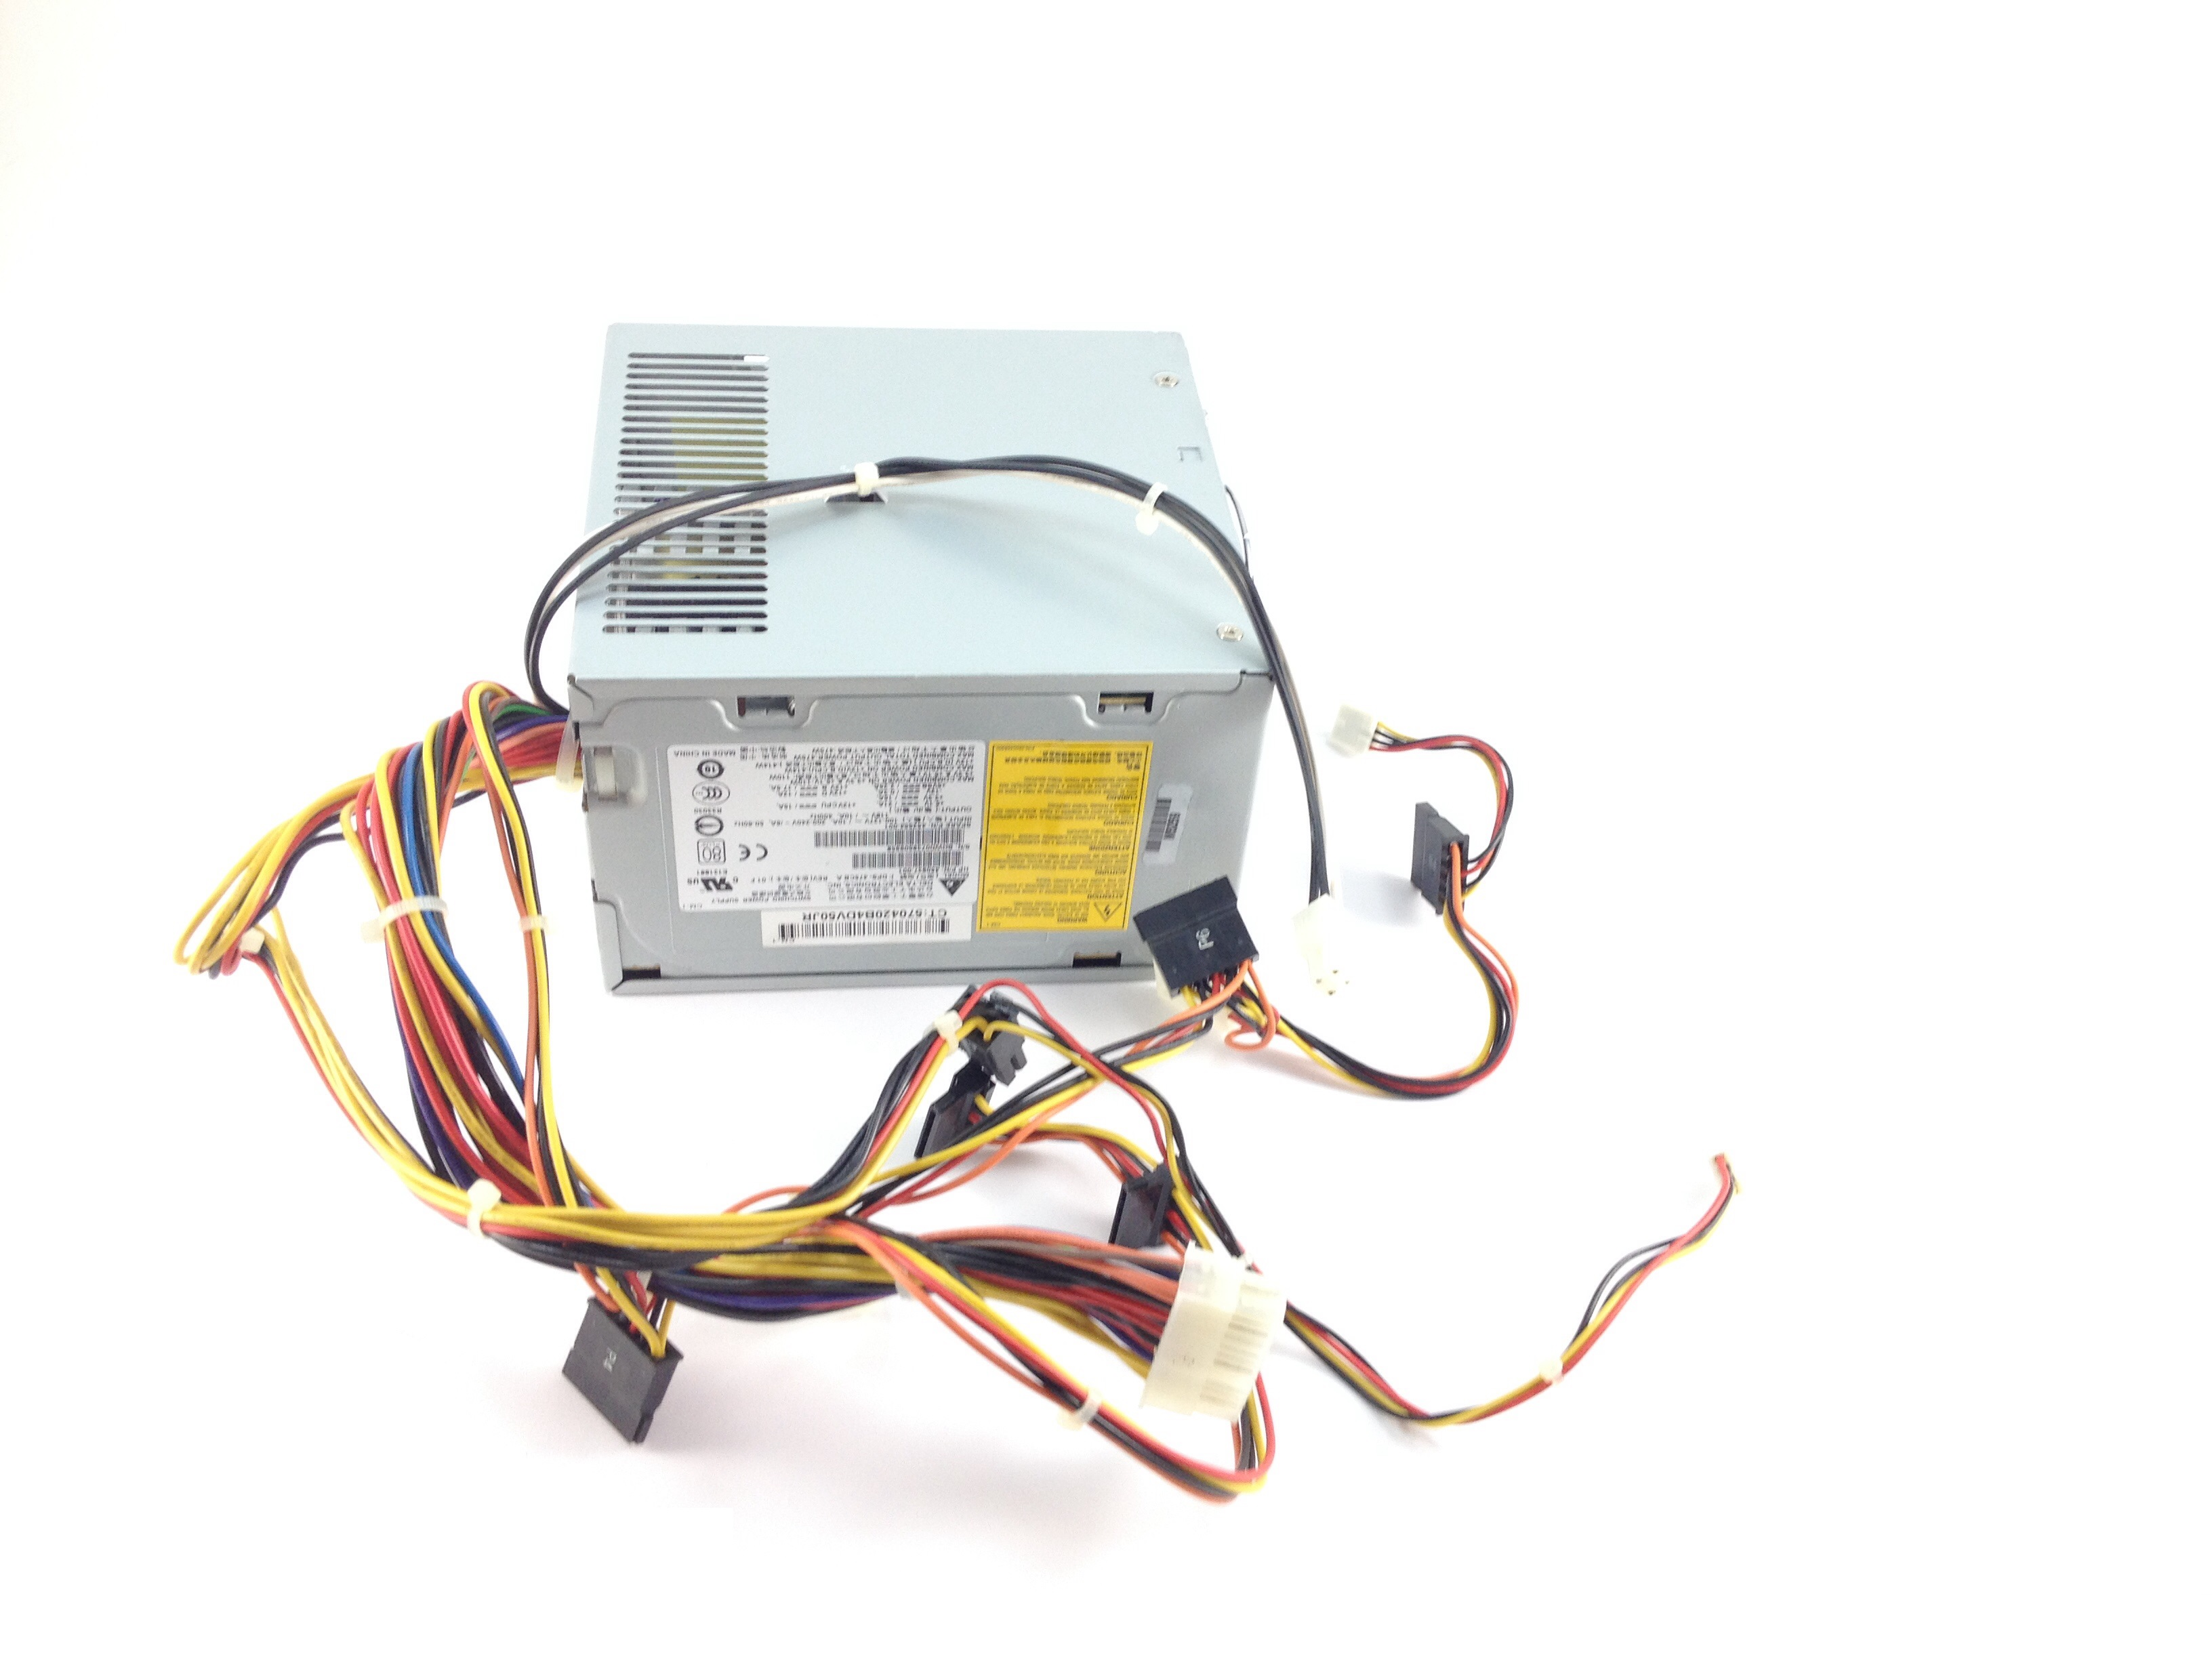 HP 475 Watt Power Supply For WorkStation Xw4600 (452554-001)